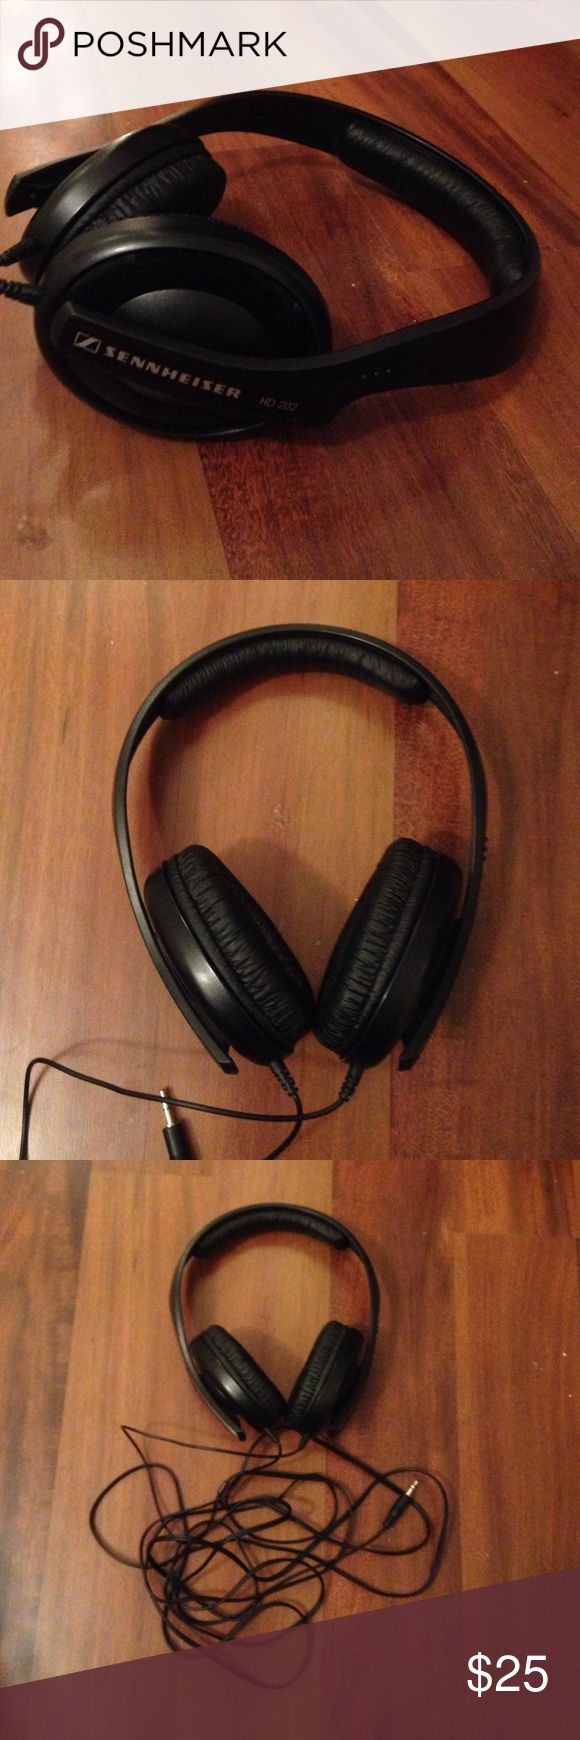 HIGH QUALITY Headphones With Long Cord Just got new over the ear headphones but these are exceptionally comfortable and good quality! Sennheiser Other